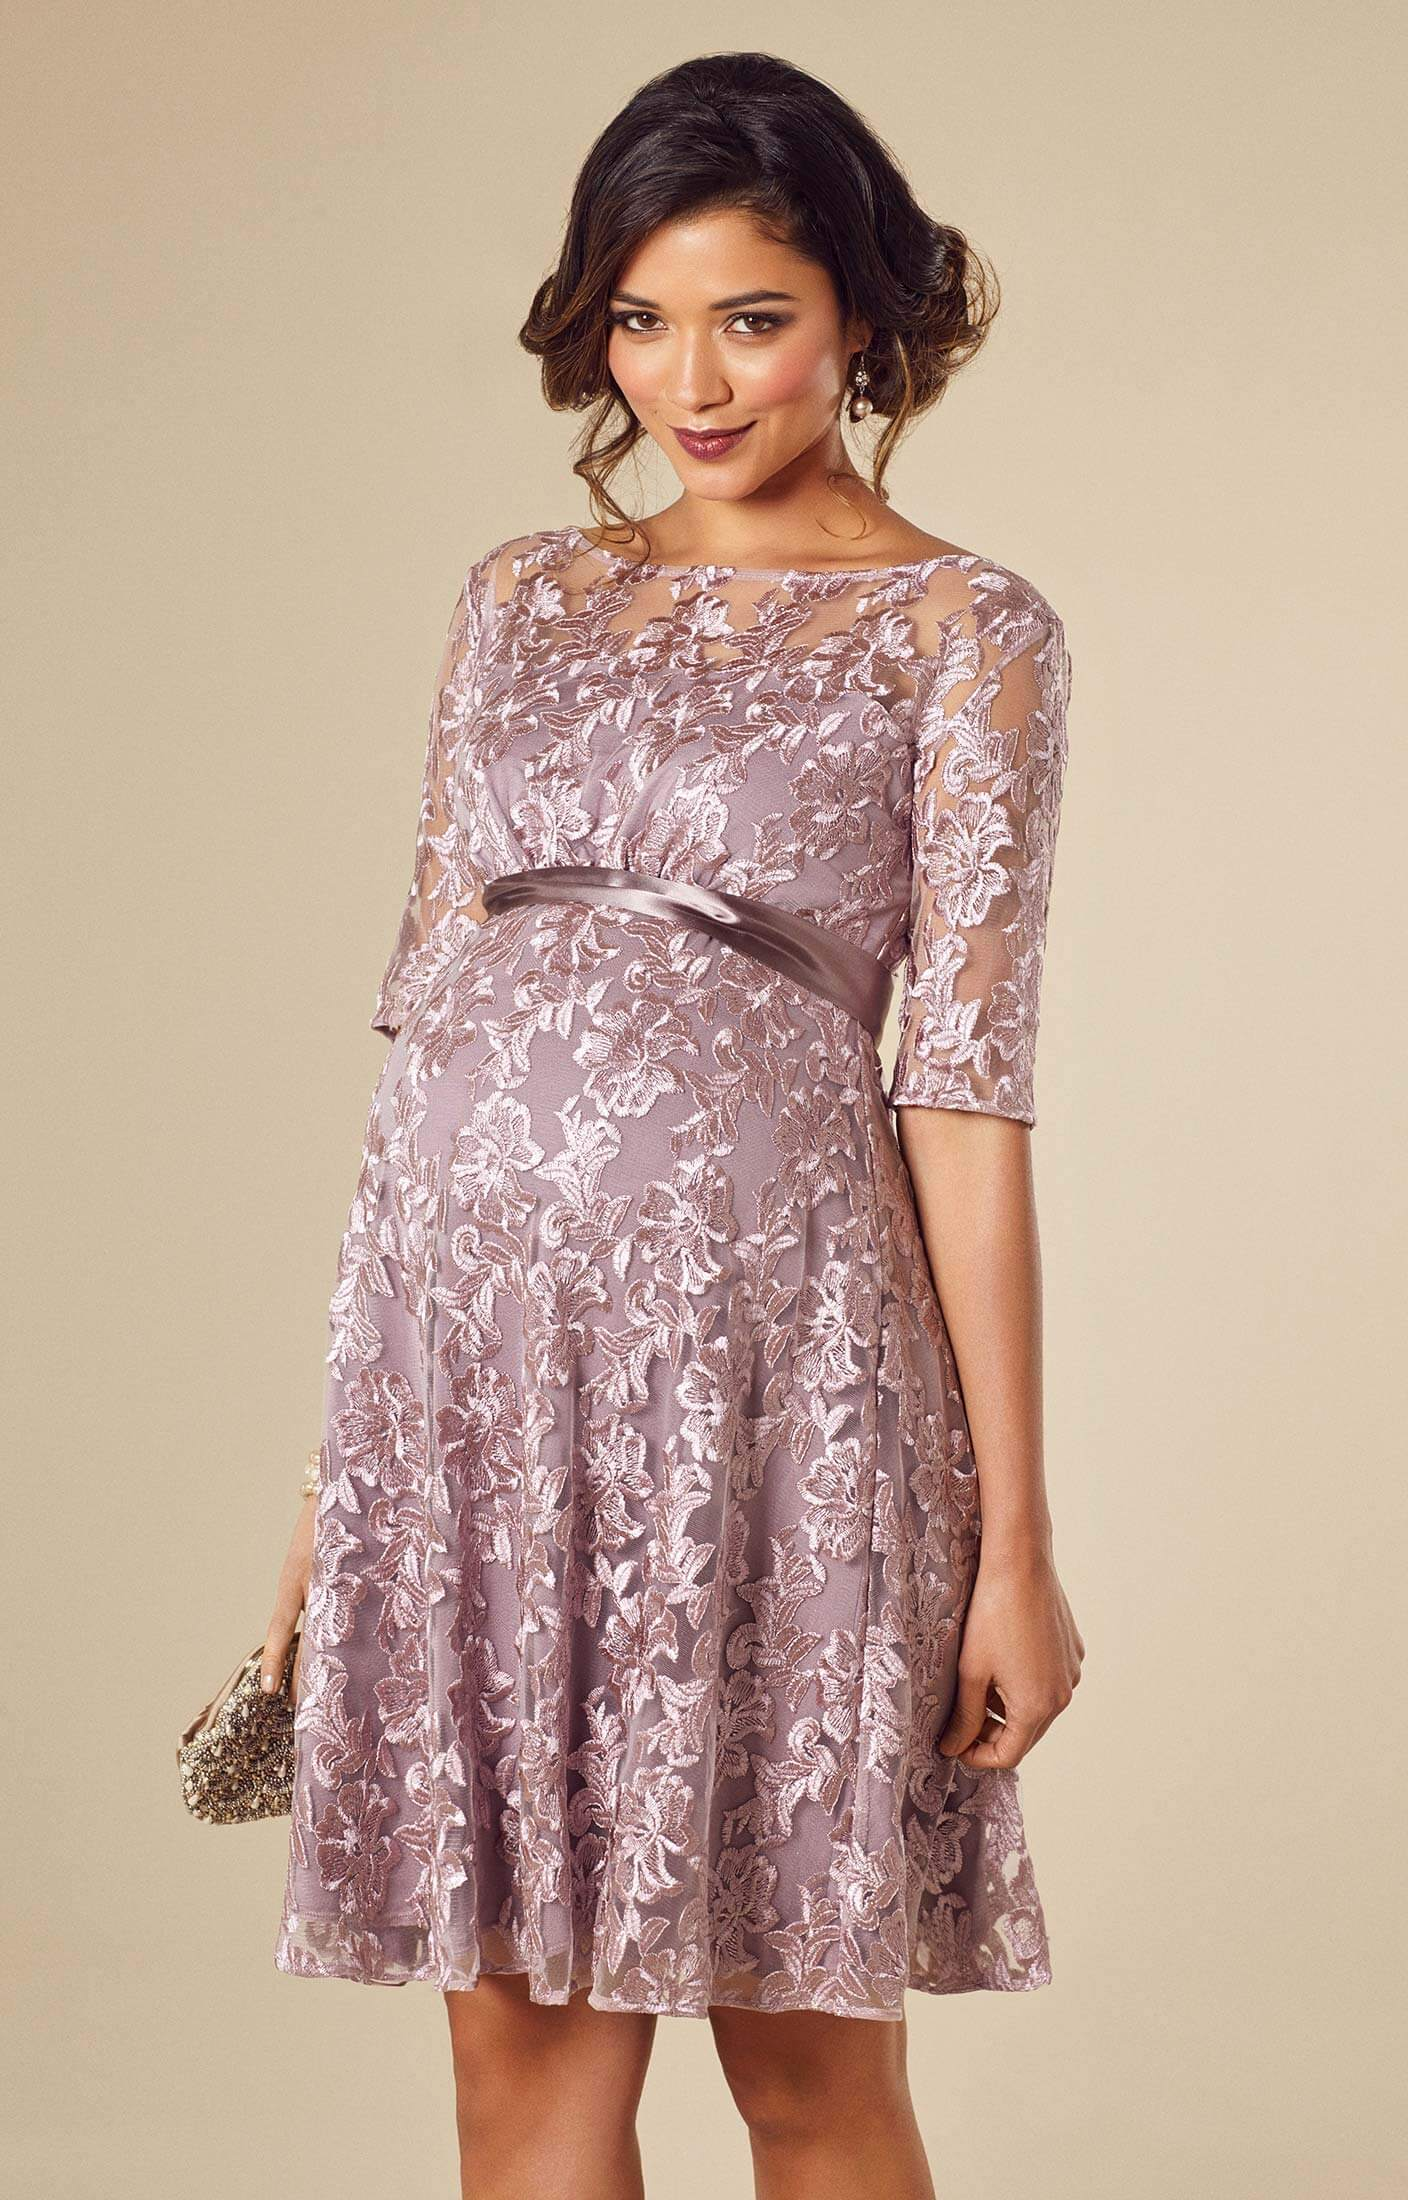 Asha Maternity Dress Lilac Maternity Wedding Dresses Evening Wear And Party Clothes By Tiffany Rose Es,Wedding Dress Designers Uk